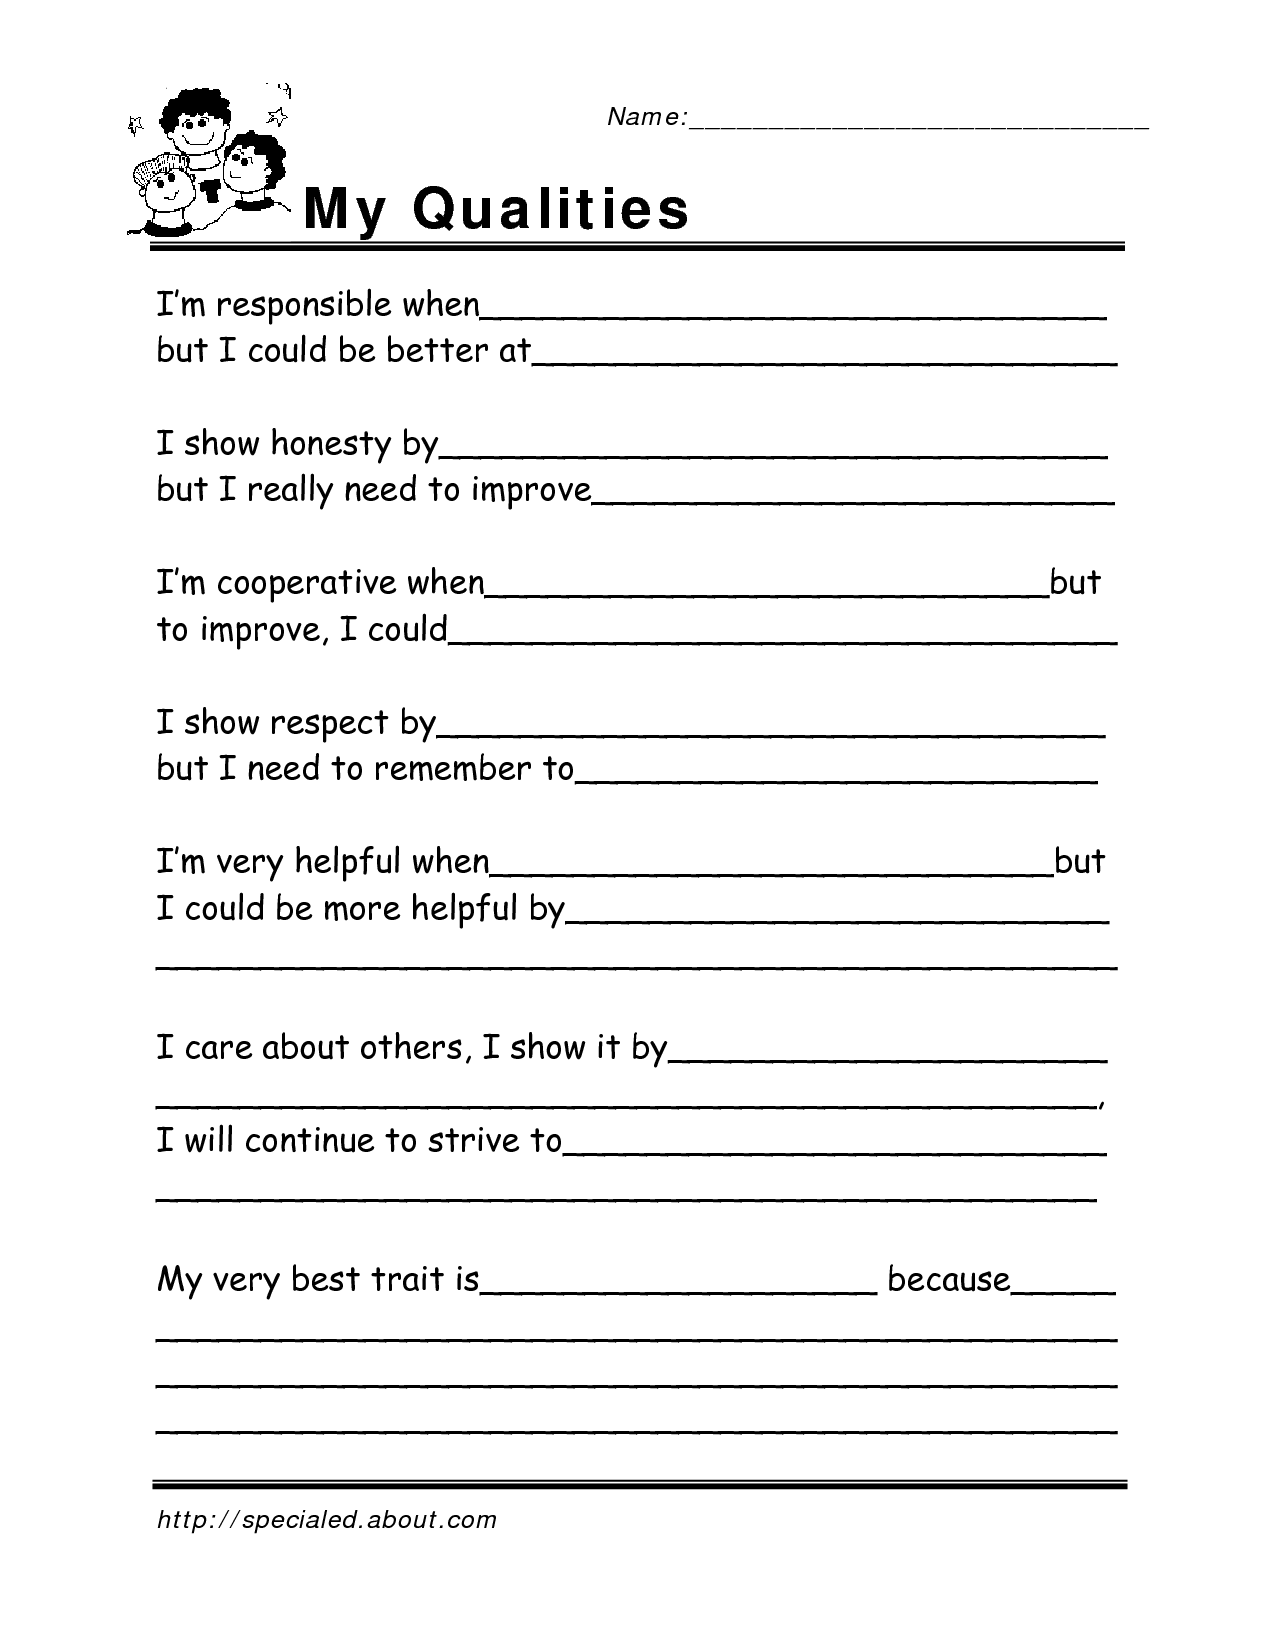 18 Best Images Of Life Skills Worksheets